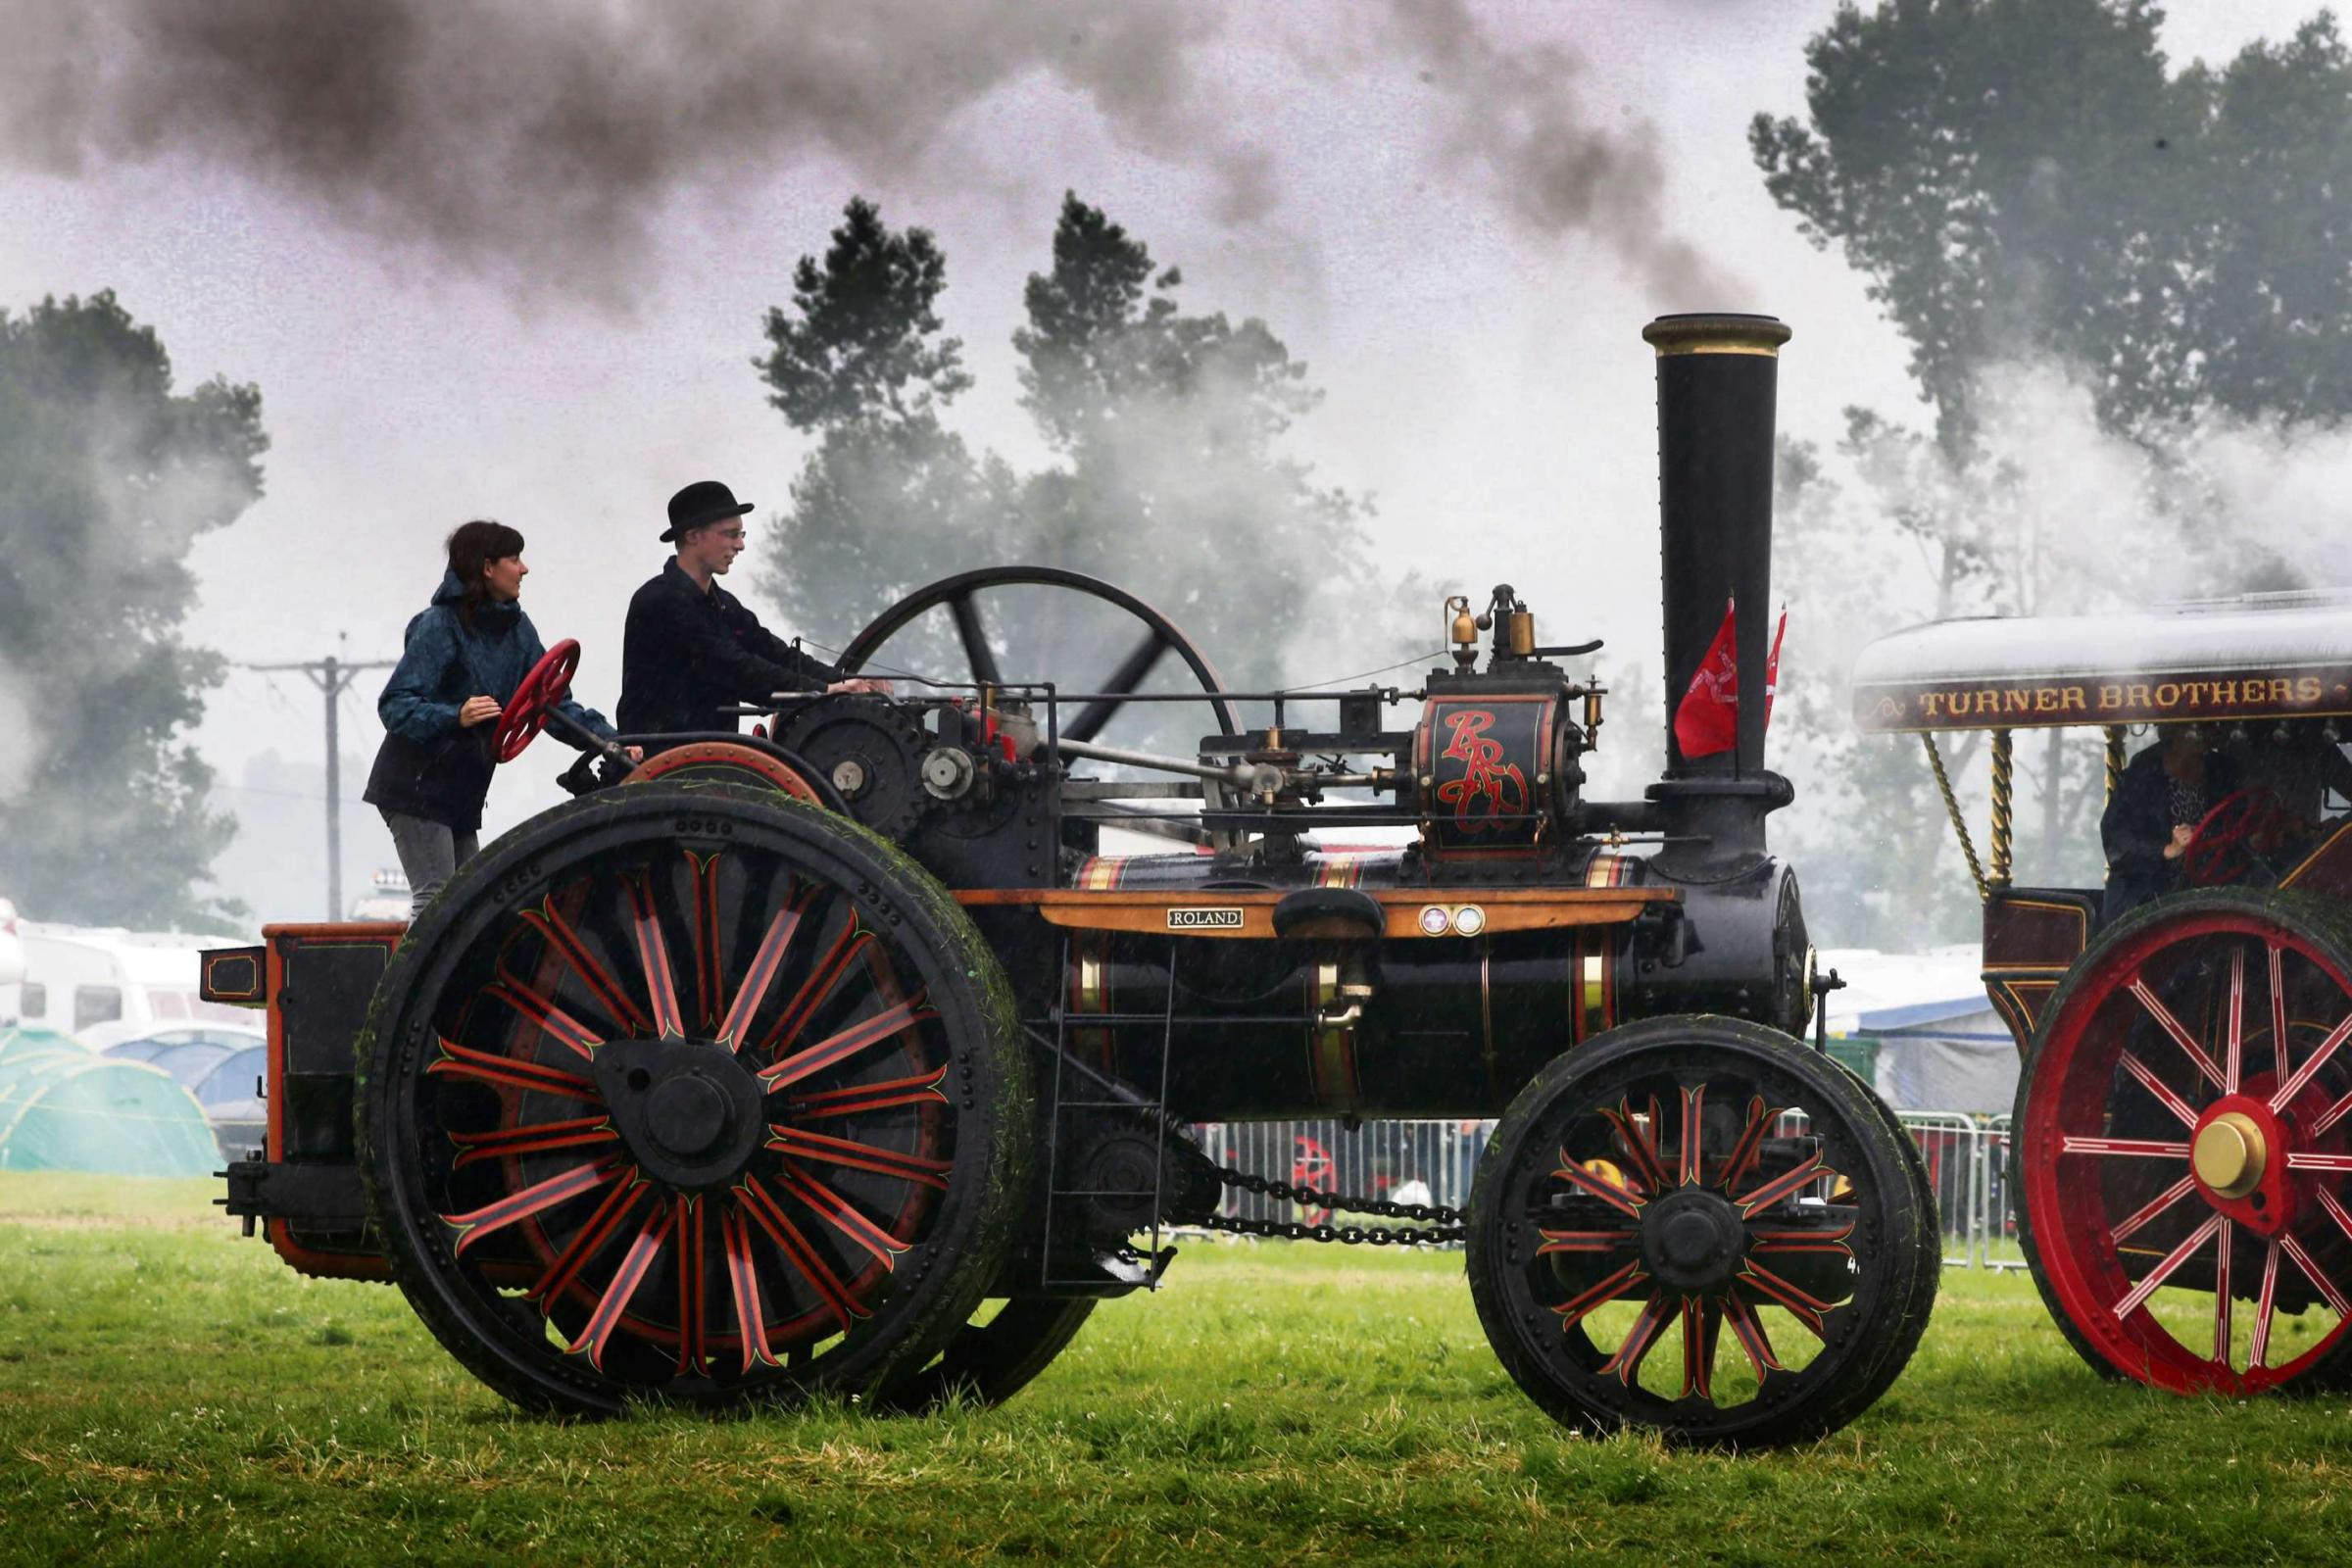 Letting off steam at rally to celebrate engines of all kinds